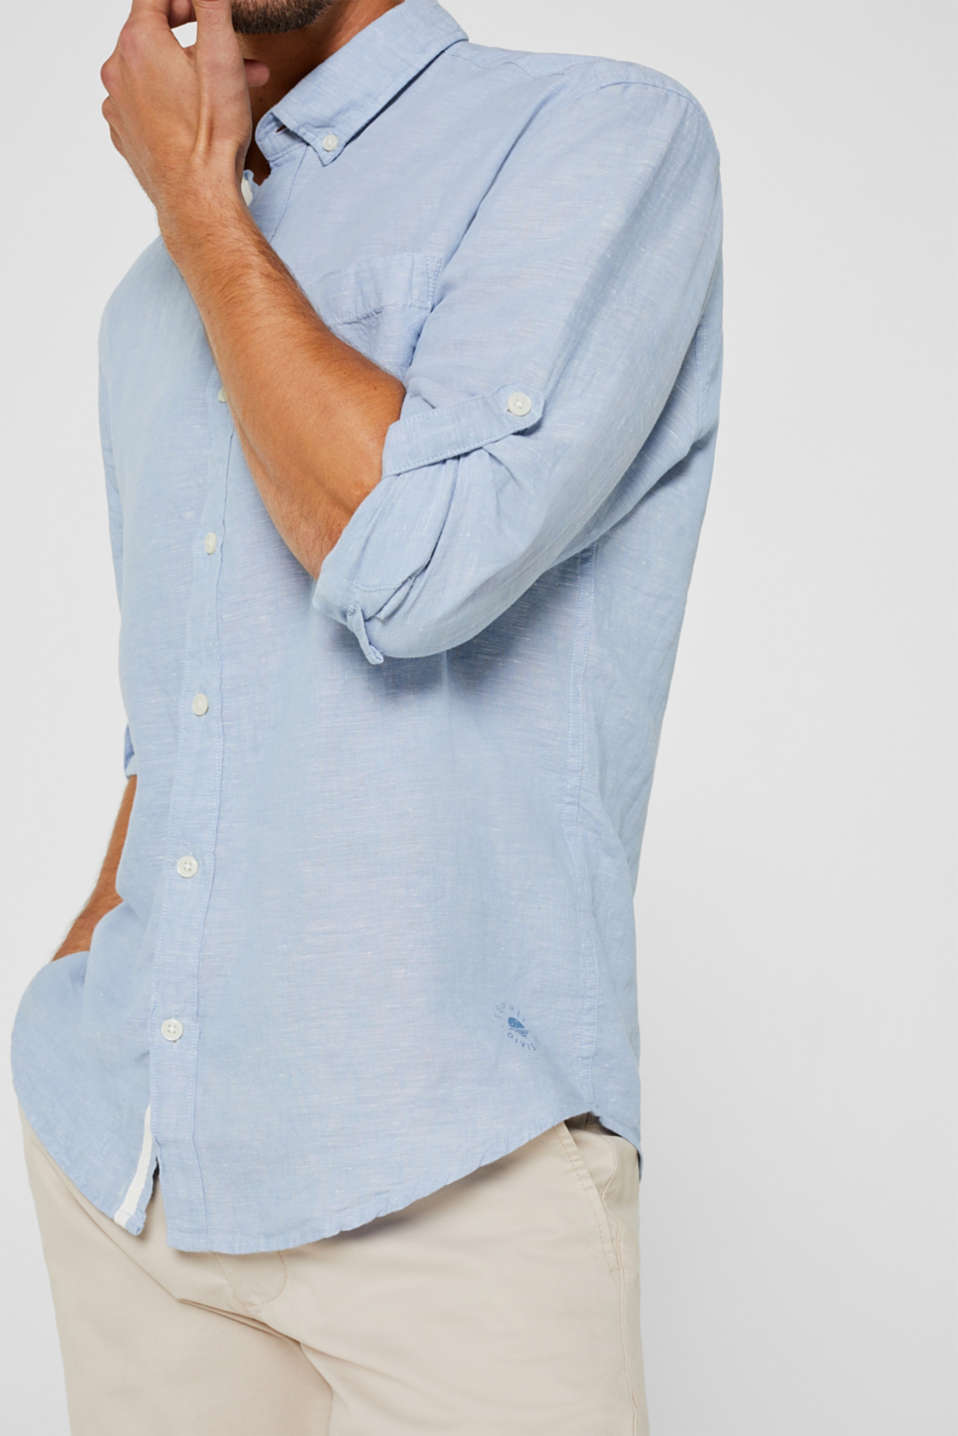 Shirts woven Regular fit, LIGHT BLUE, detail image number 2